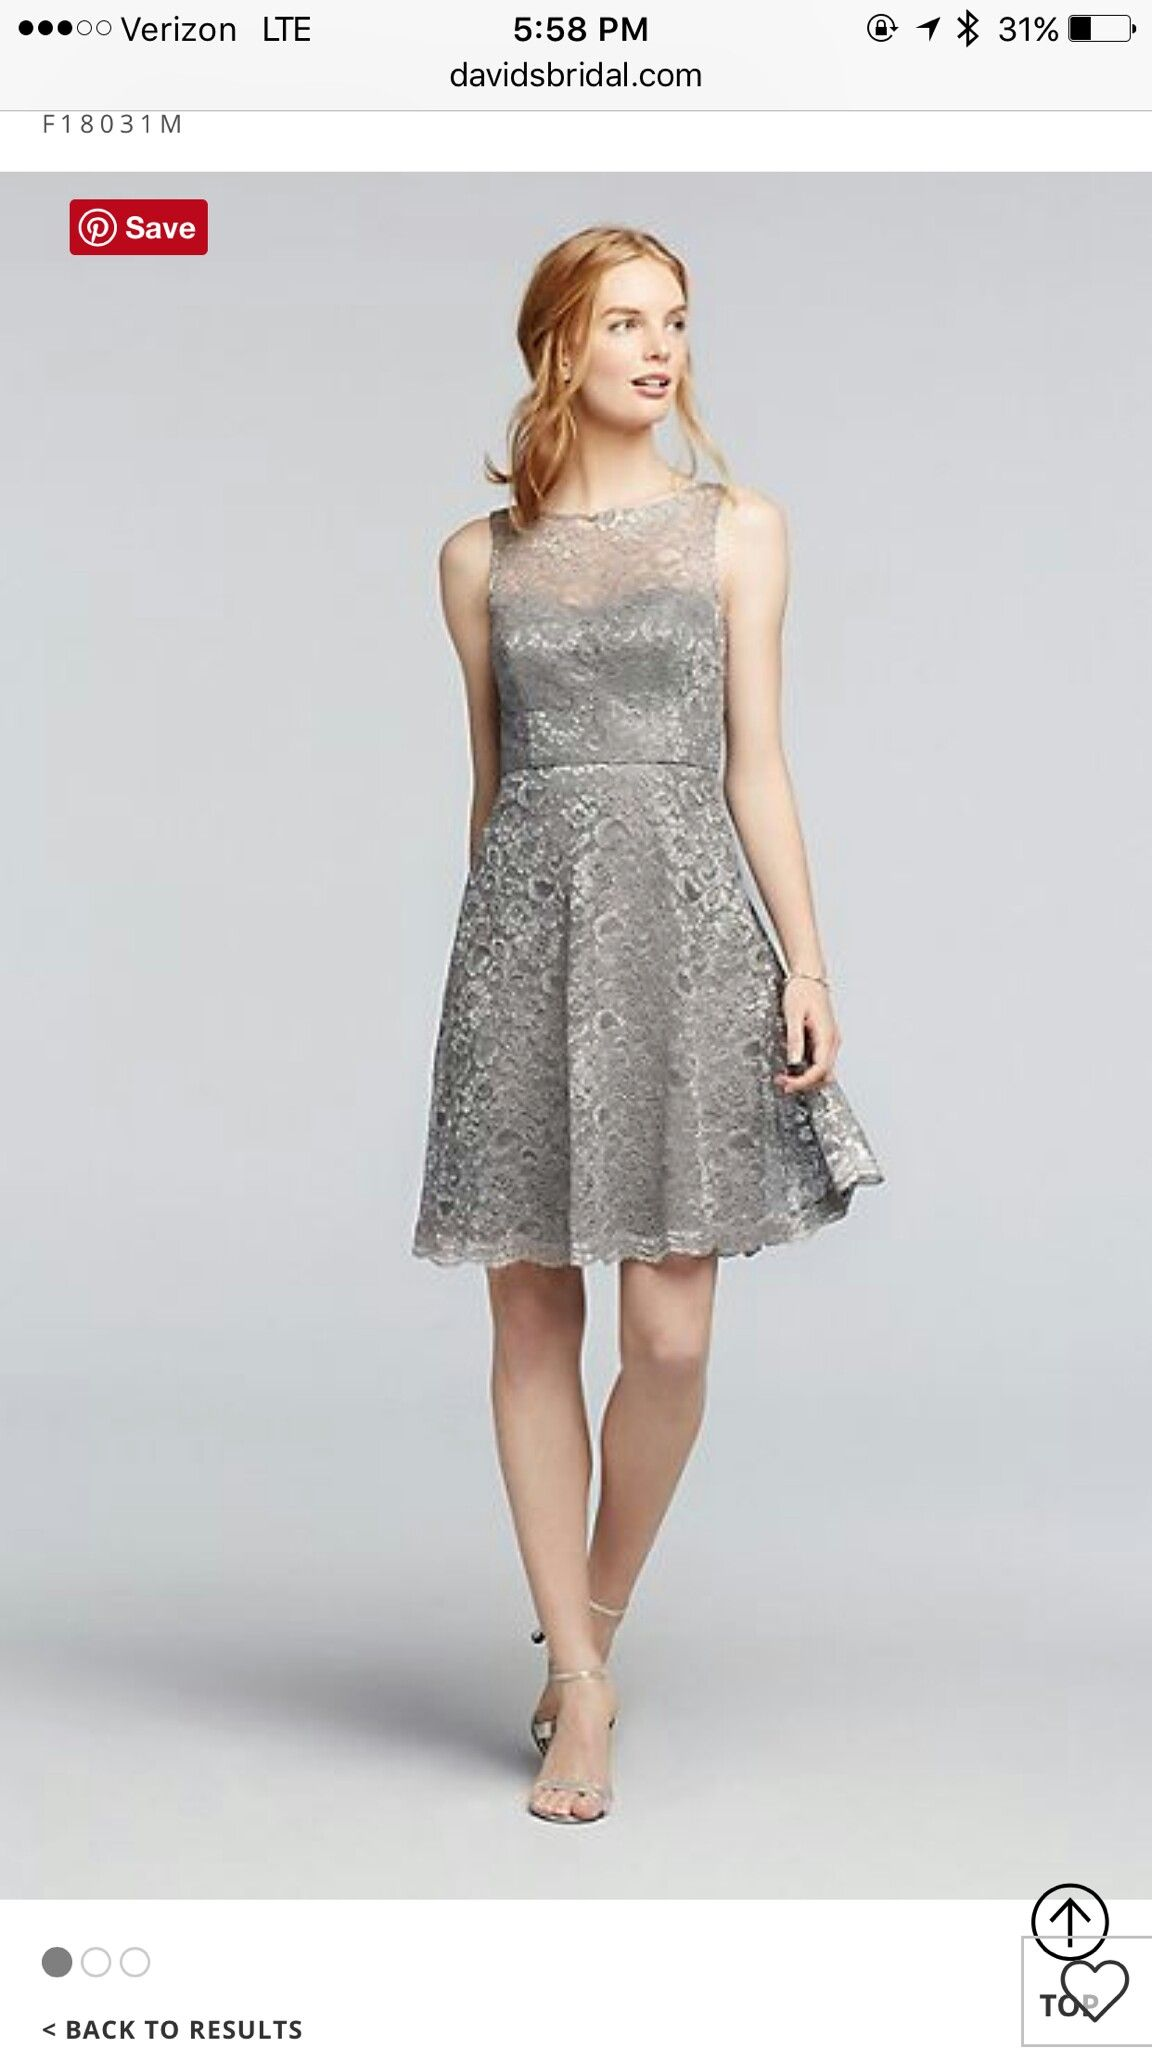 Pin by jenifer williams on kaylas wedding june 2018 pinterest the illusion lace neckline adds a cool cutout effect to this short metallic lace bridesmaid dress ombrellifo Images